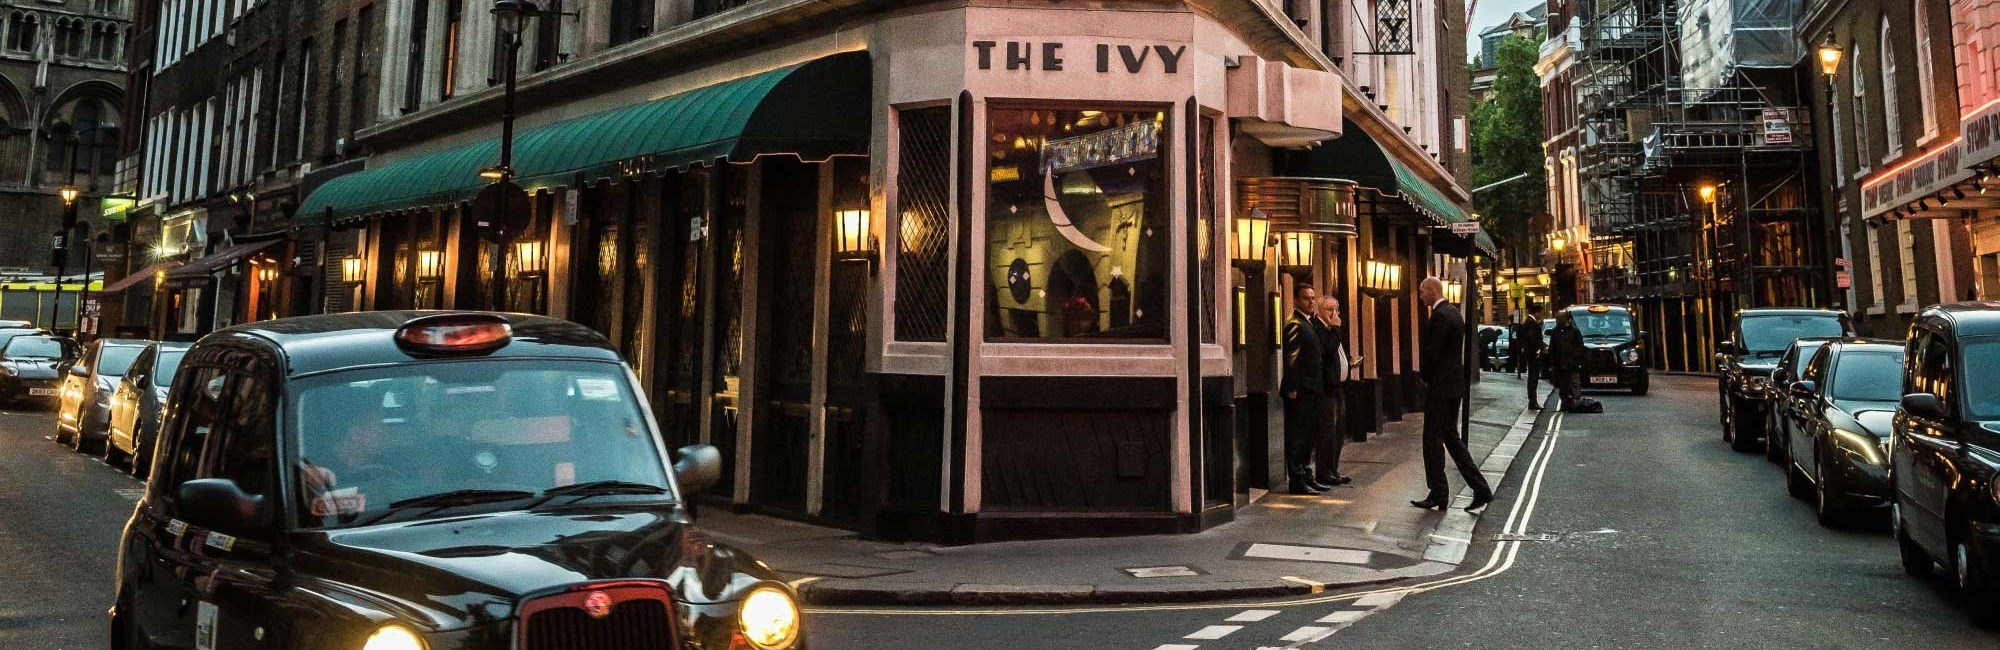 The exterior of The Ivy West Street, near Leicester Square in London